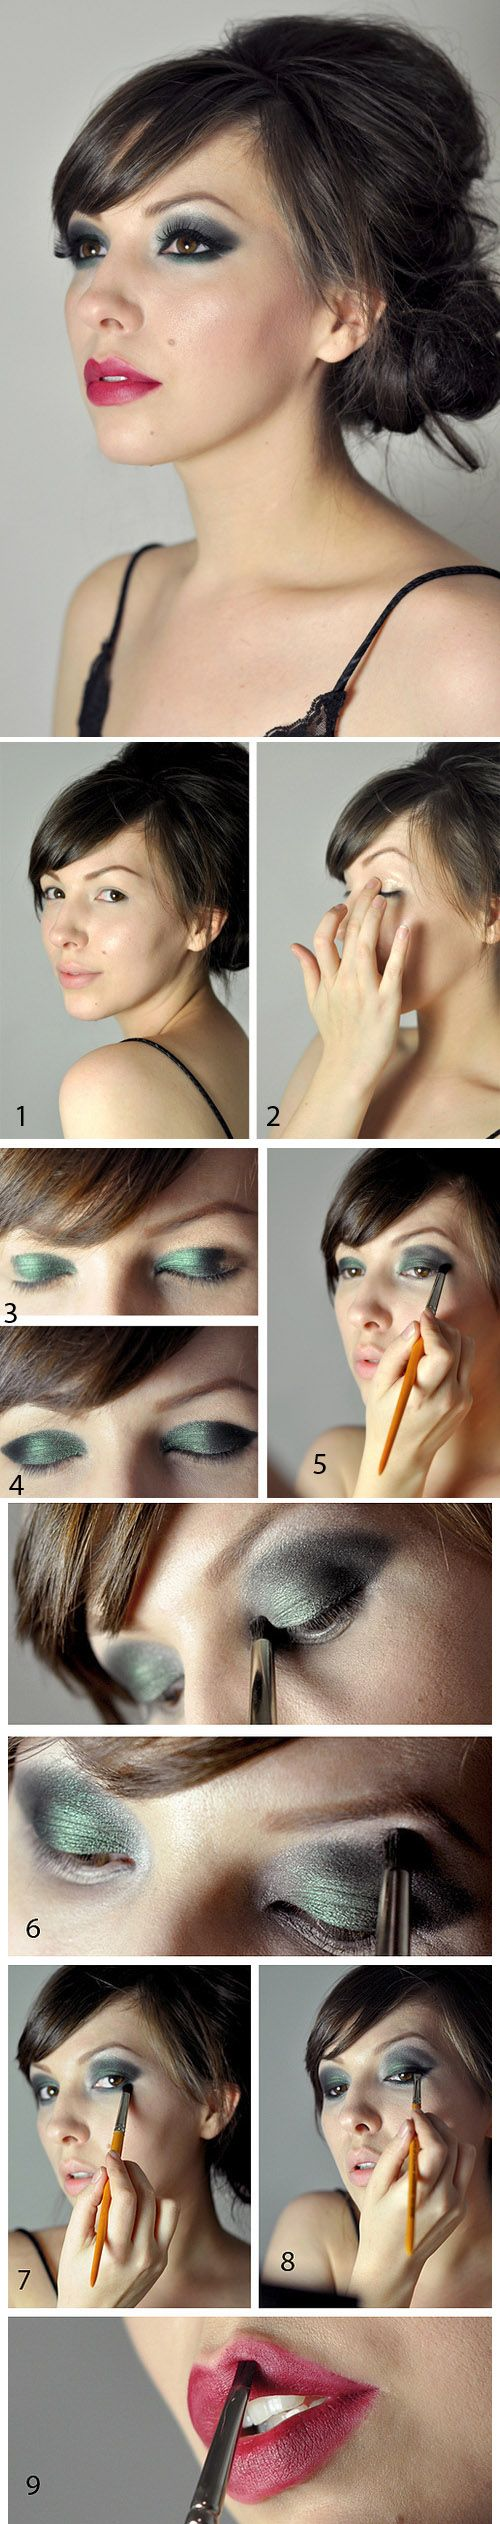 Glam Holiday Look Tutorial / 22 Beauty Tutorials For Dramatic Holiday Looks